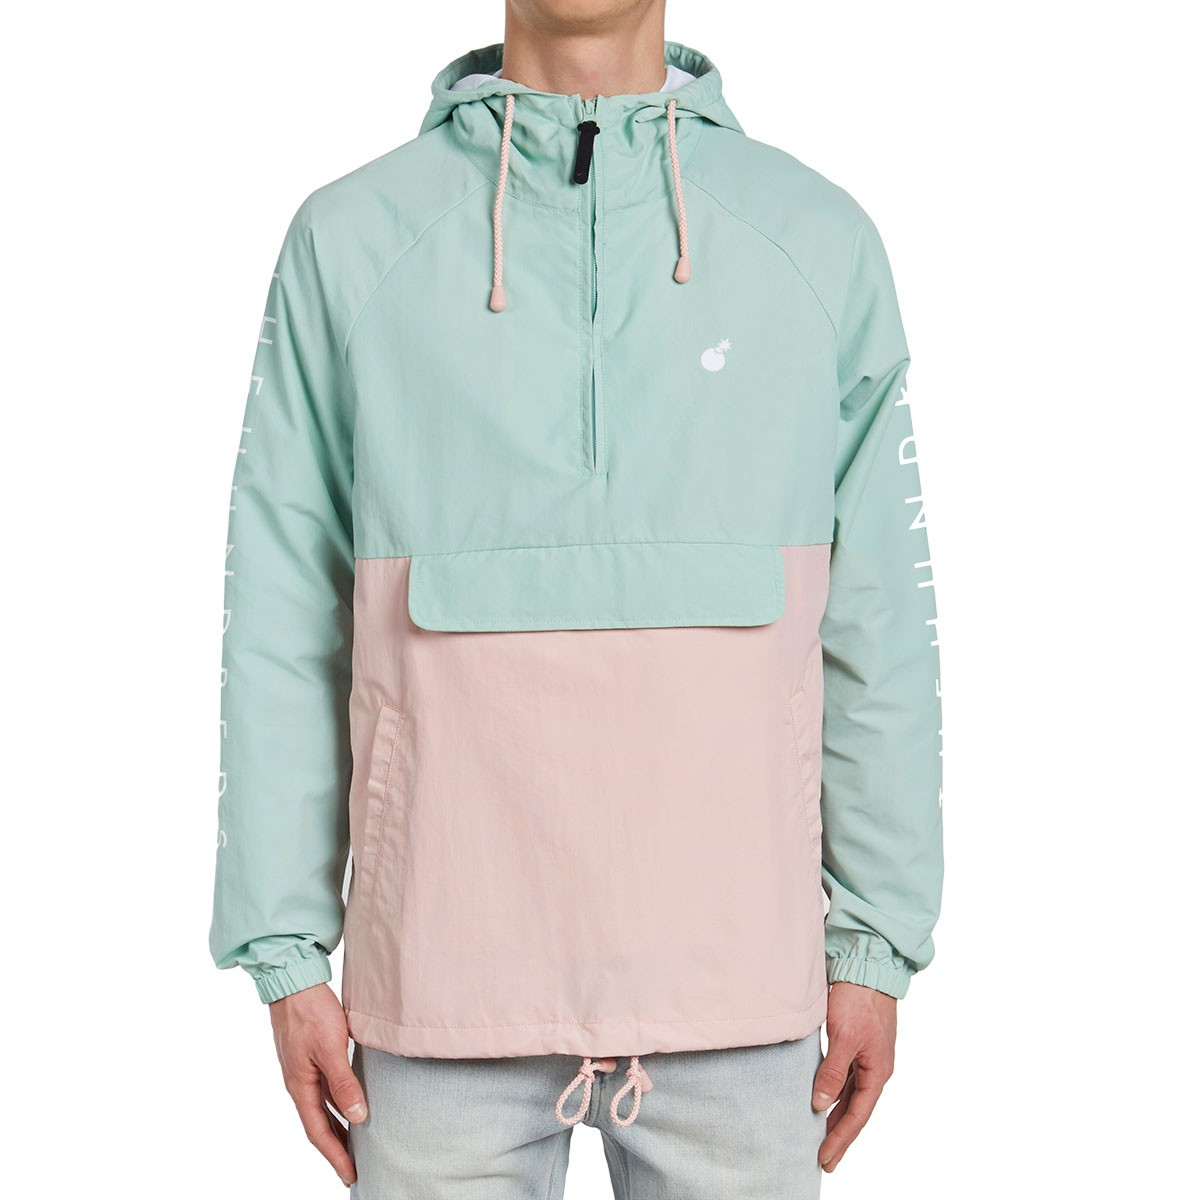 The hundreds dell anorak jacket pale turquoise for Couleur bleu turquoise clair